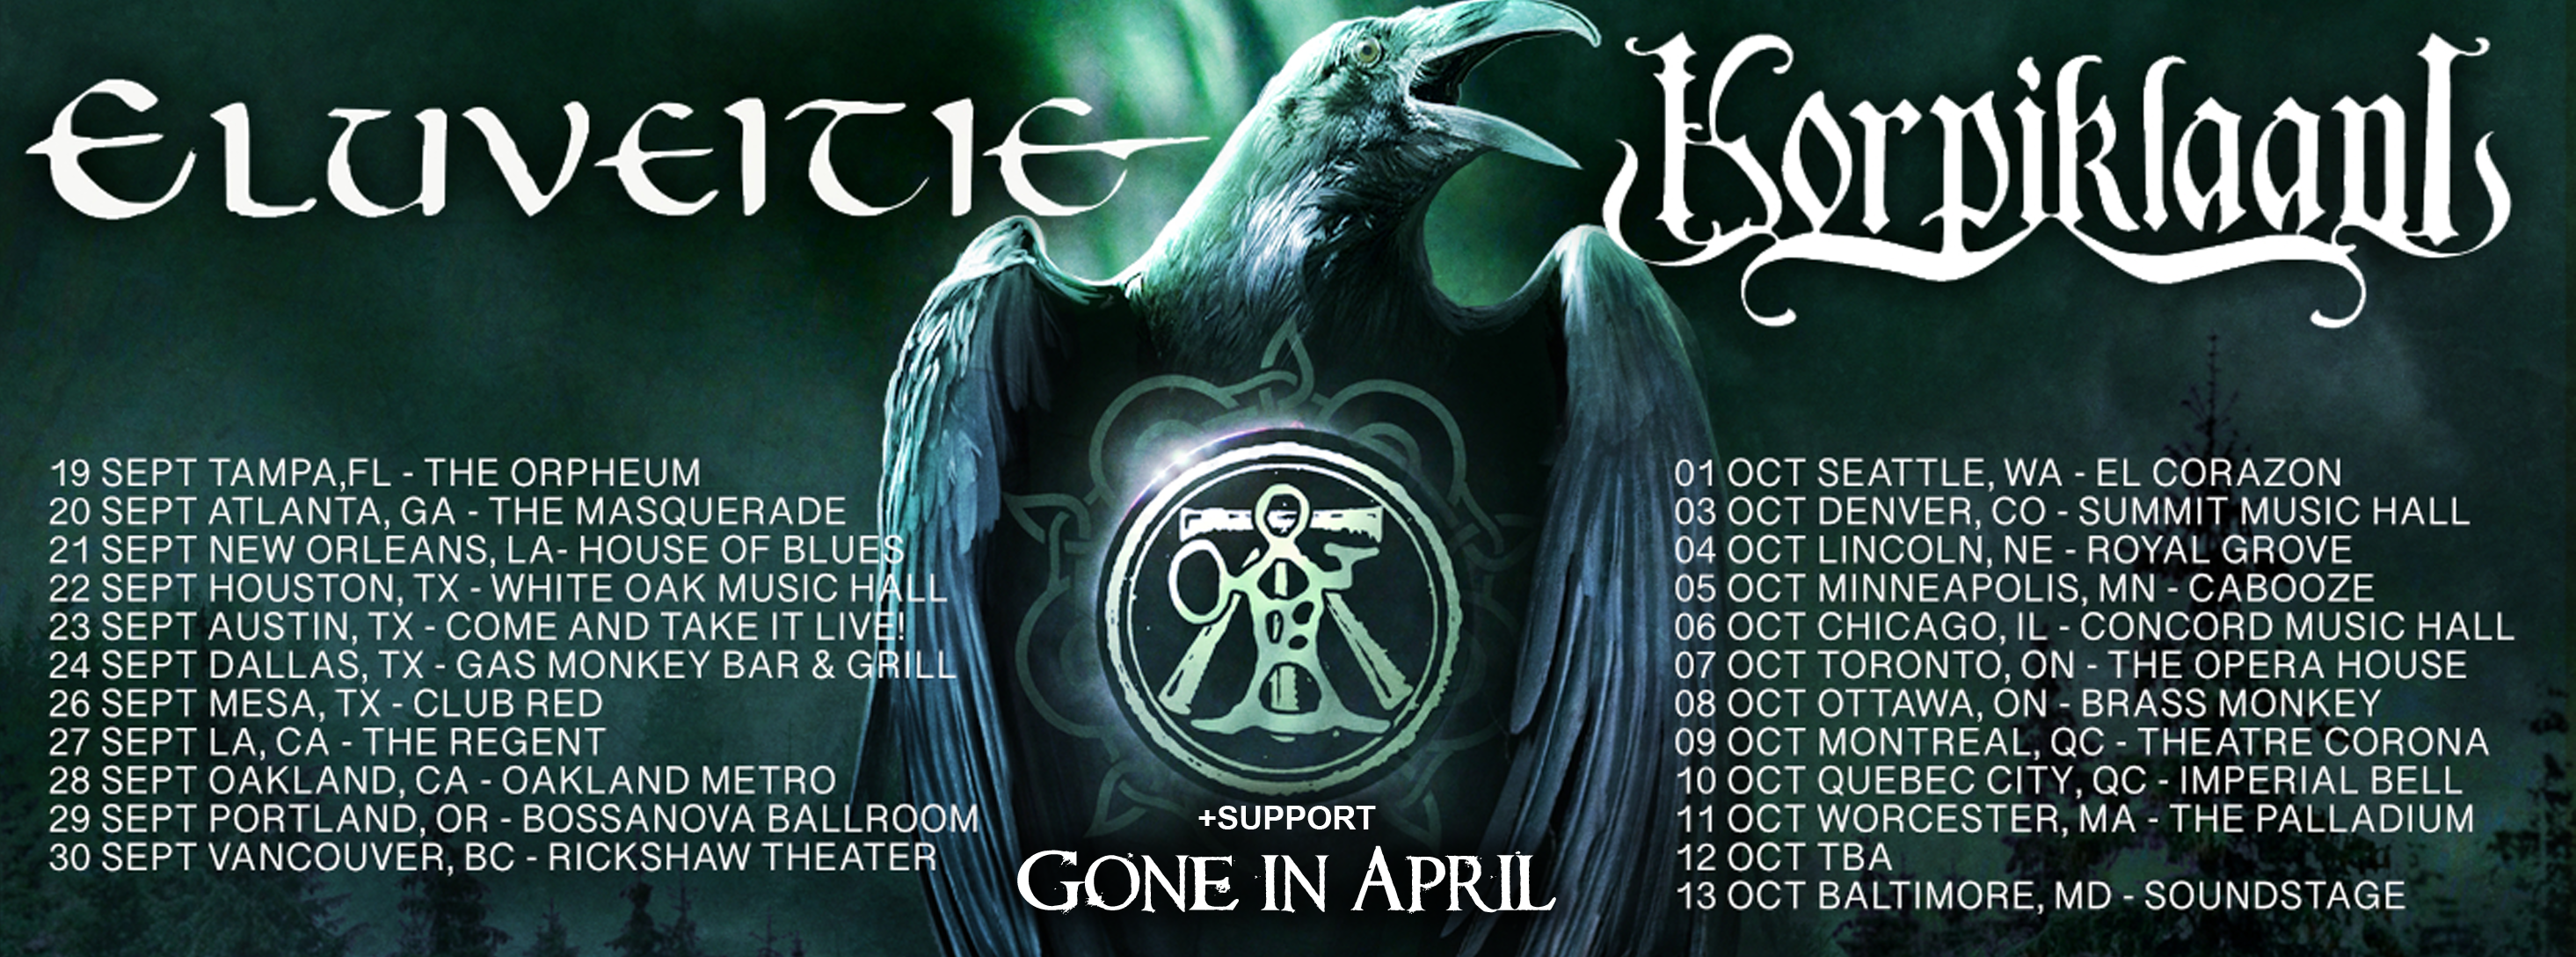 Gone in April North American tour 2019